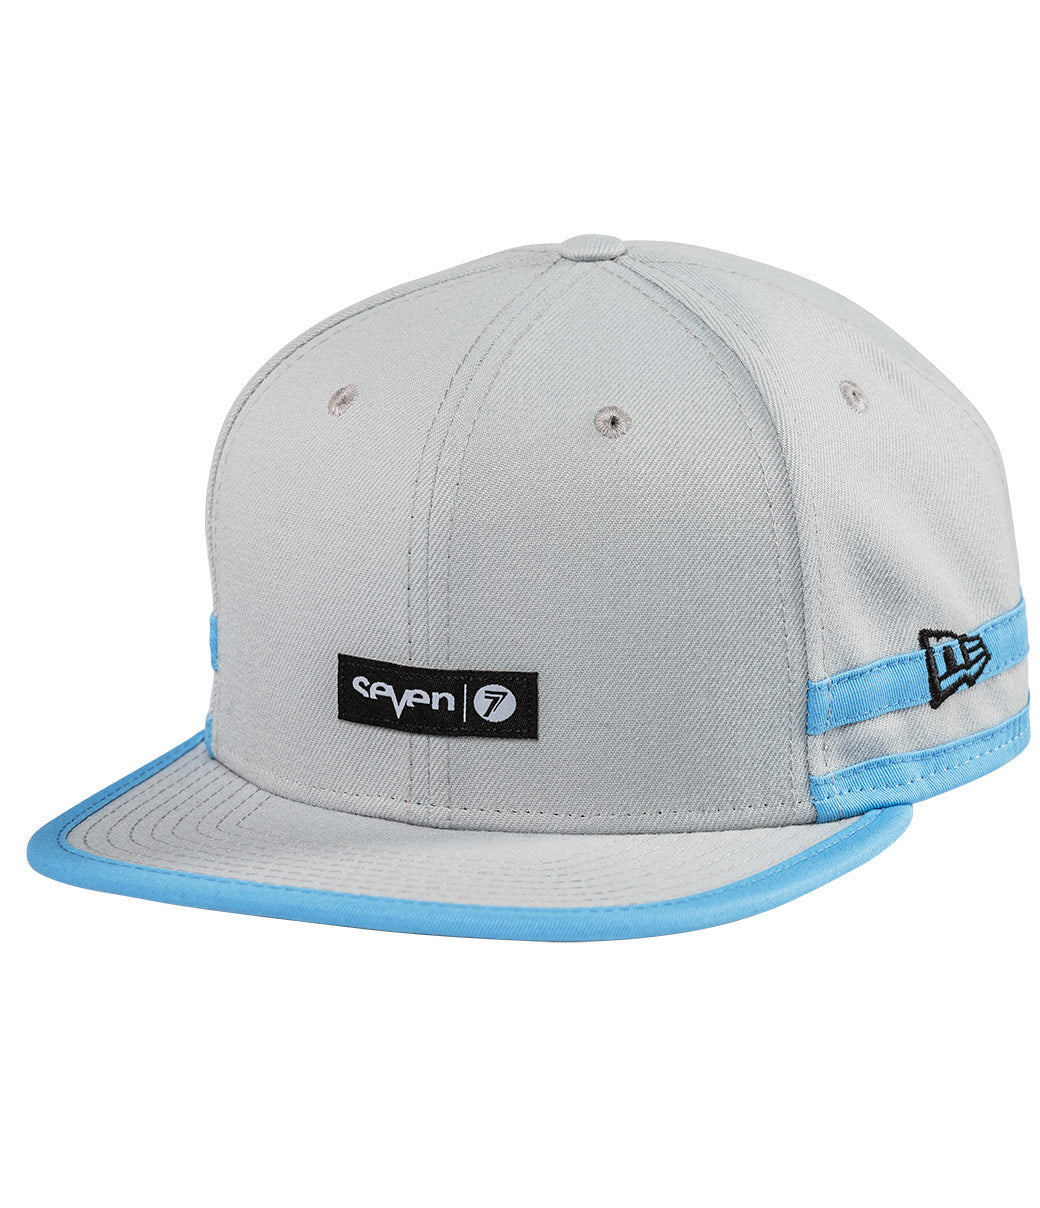 Slider Hat - Grey/Blue